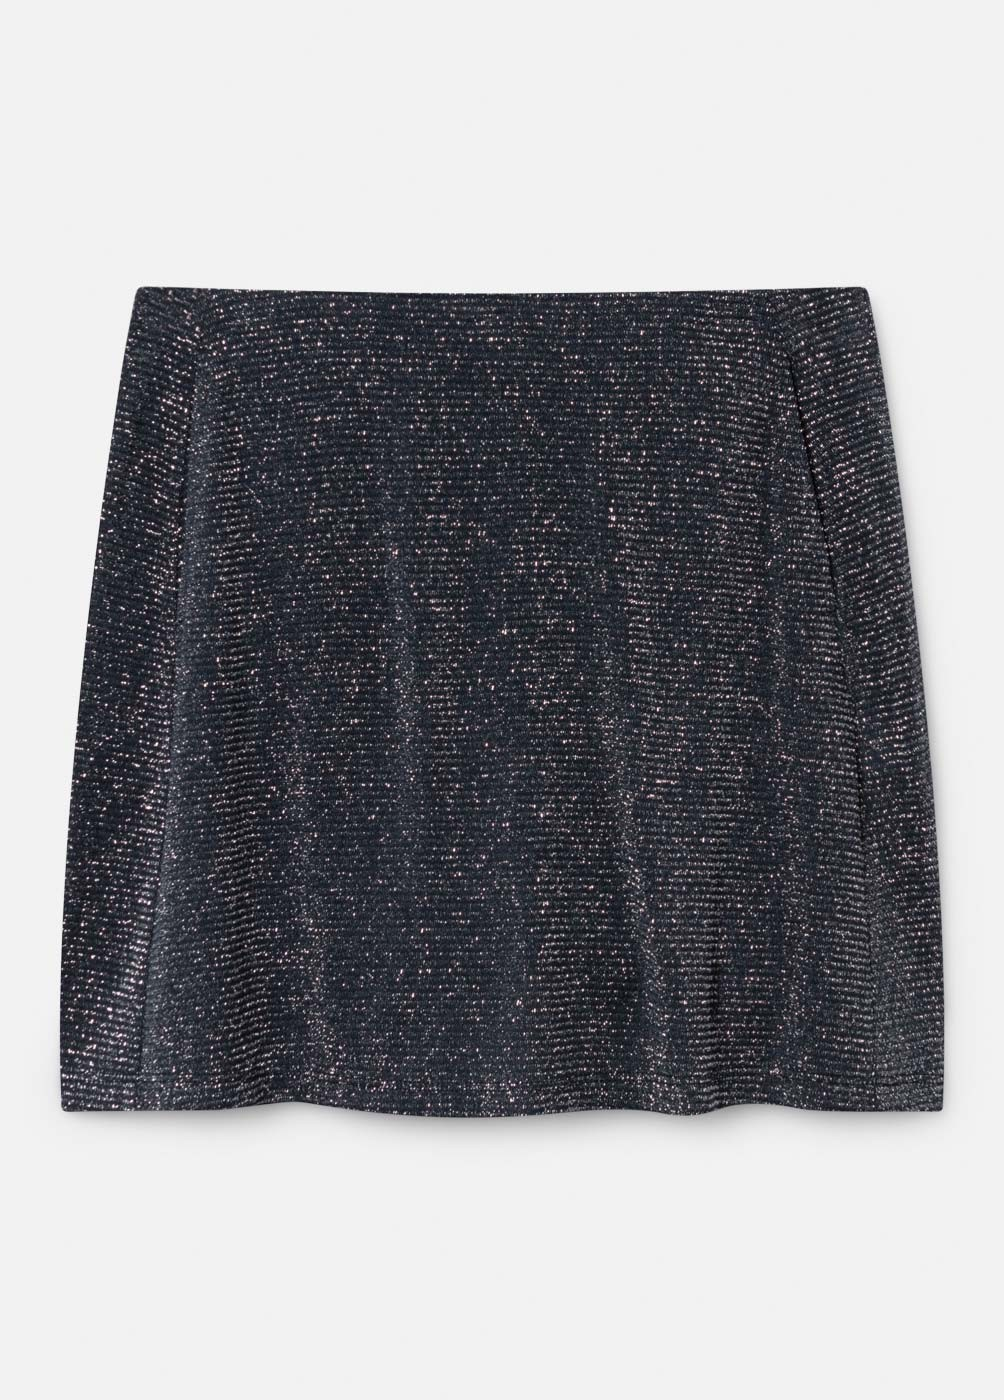 INDIA KNITTED SKIRT WITH INNER POCKET